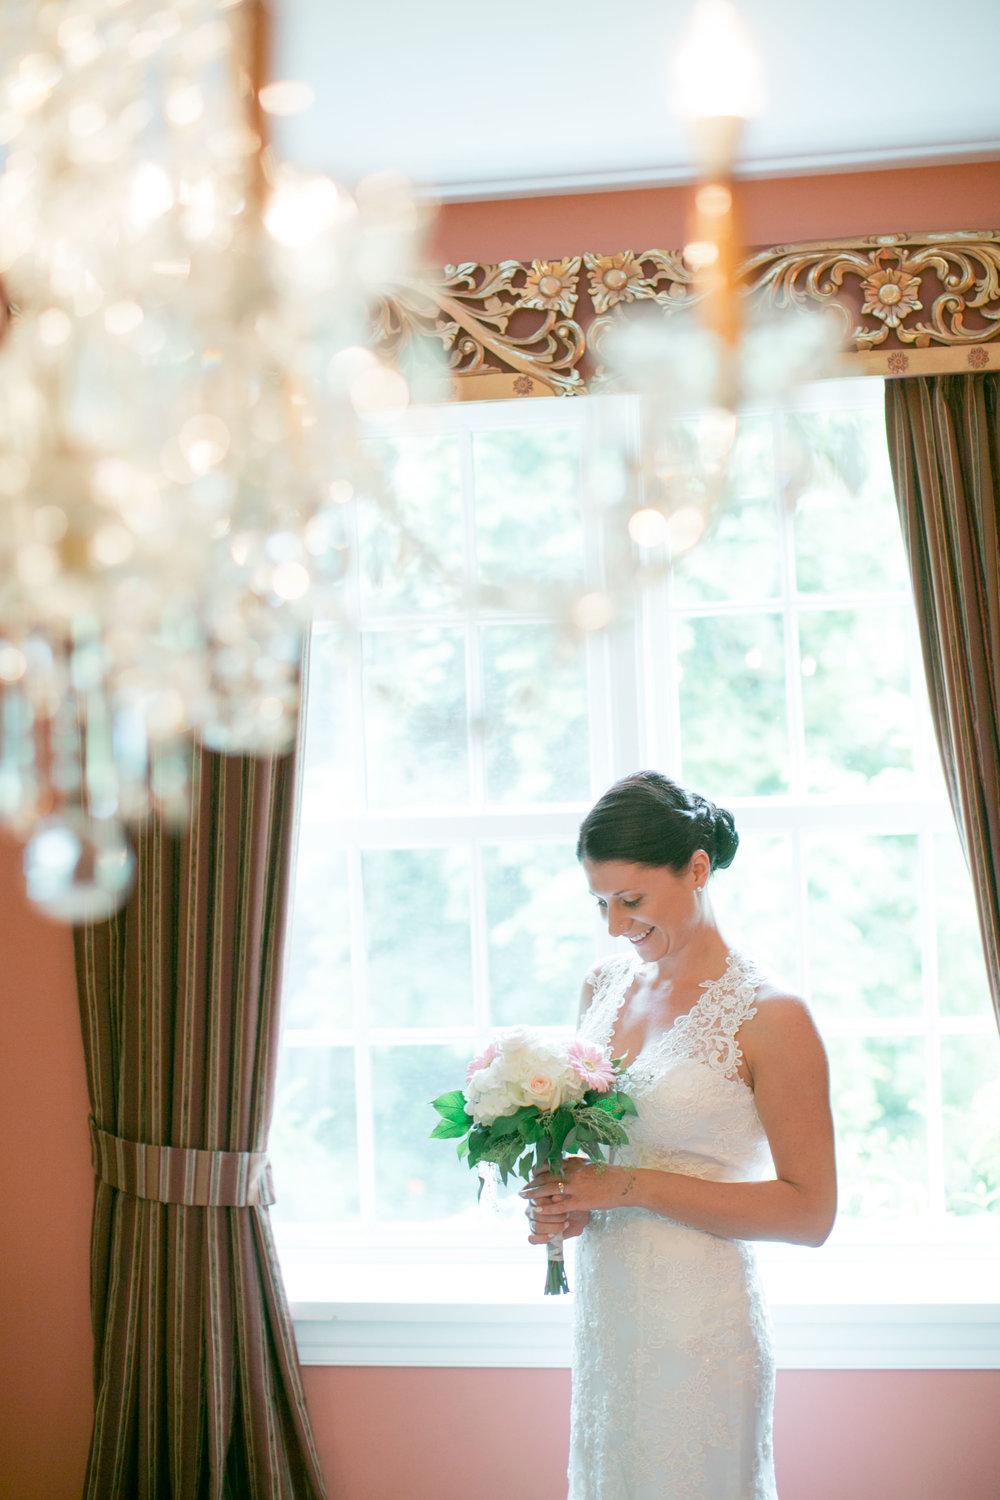 Sarah + Jason - Daniel Ricci Weddings High Res. Finals-121.jpg